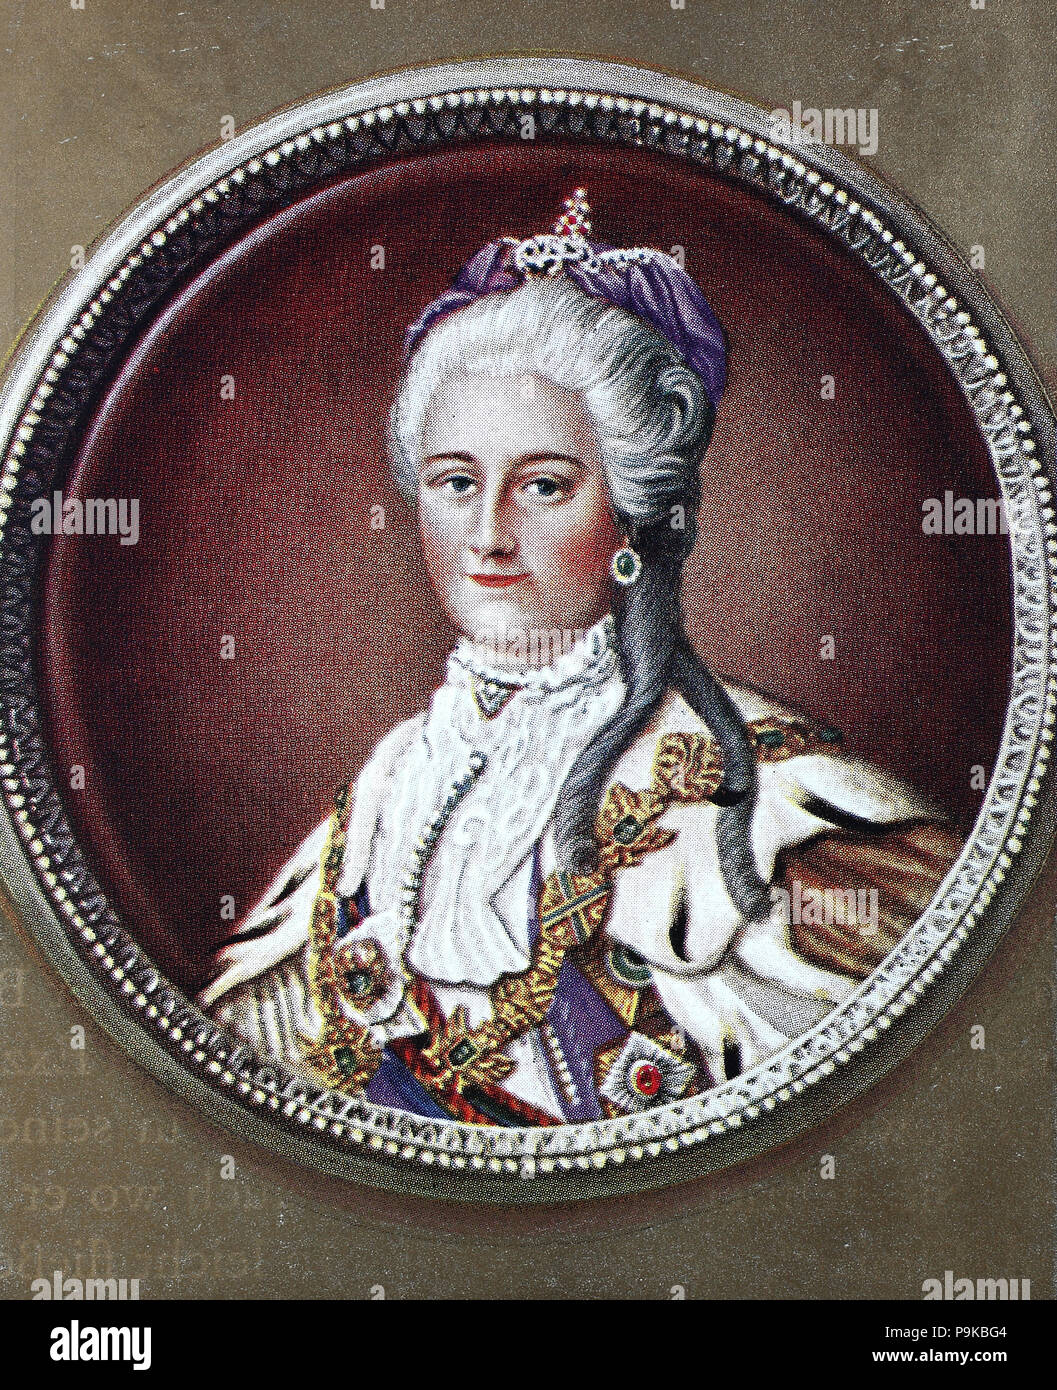 Catherine II, Yekaterina Alekseyevna, 2 May 1729 – 17 November 1796, also known as Catherine the Great, Yekaterina Velikaya, born Princess Sophie of Anhalt-Zerbst, was Empress of Russia from 1762 until 1796, digital improved reproduction of an original print from the year 1900 Stock Photo